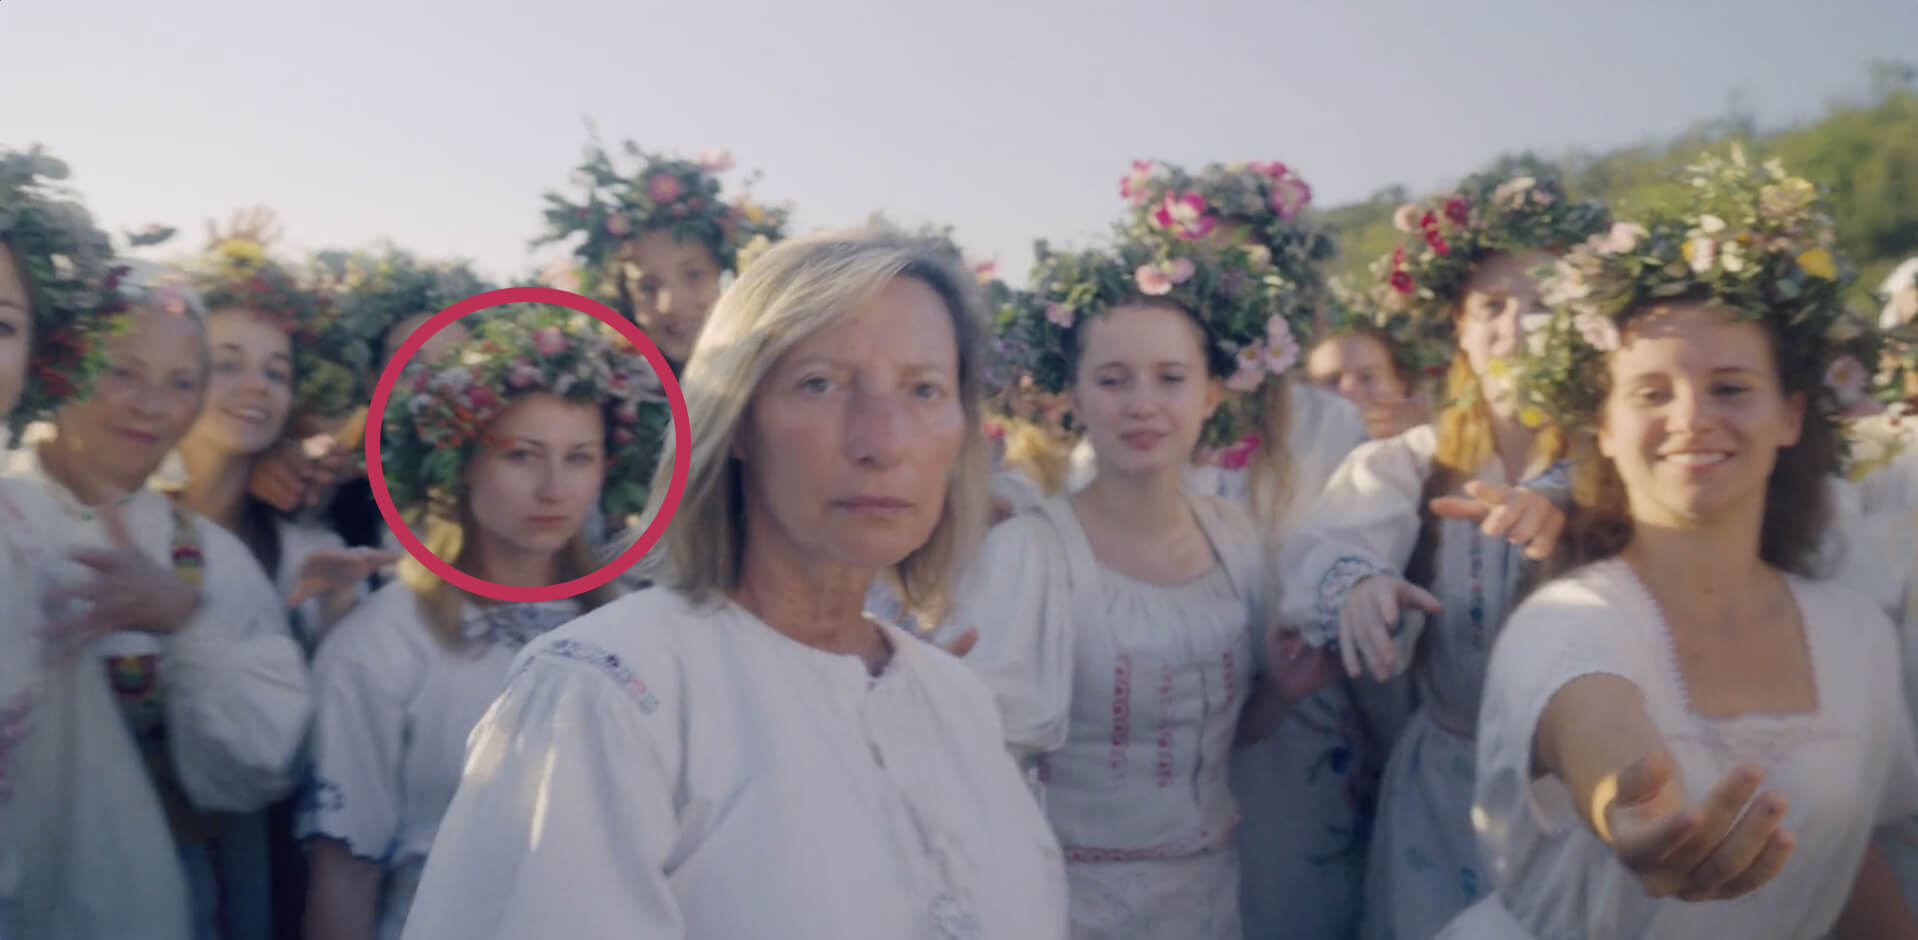 Midsommar Explained - Sister in the Crowd